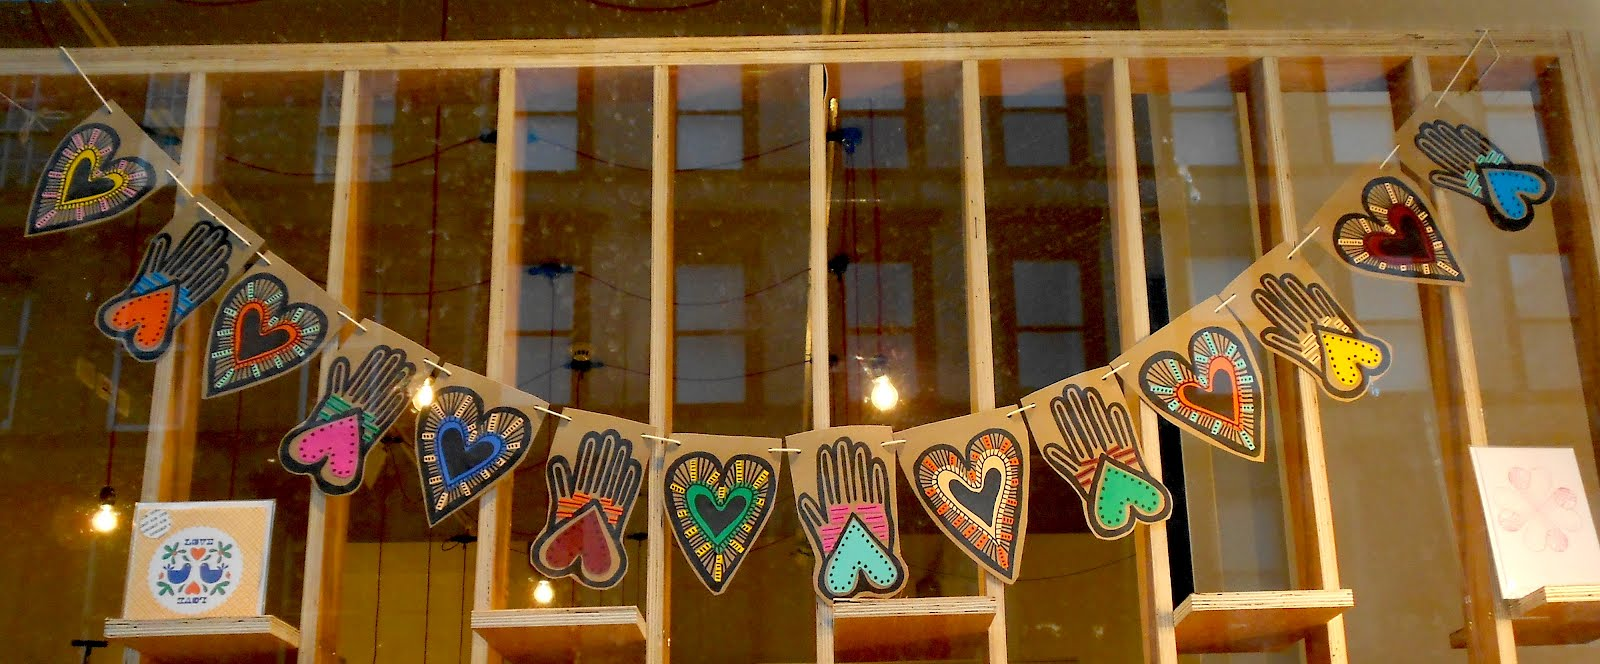 Cute window display decorated for Valentine's day with hanging hearts and hands illustrations.